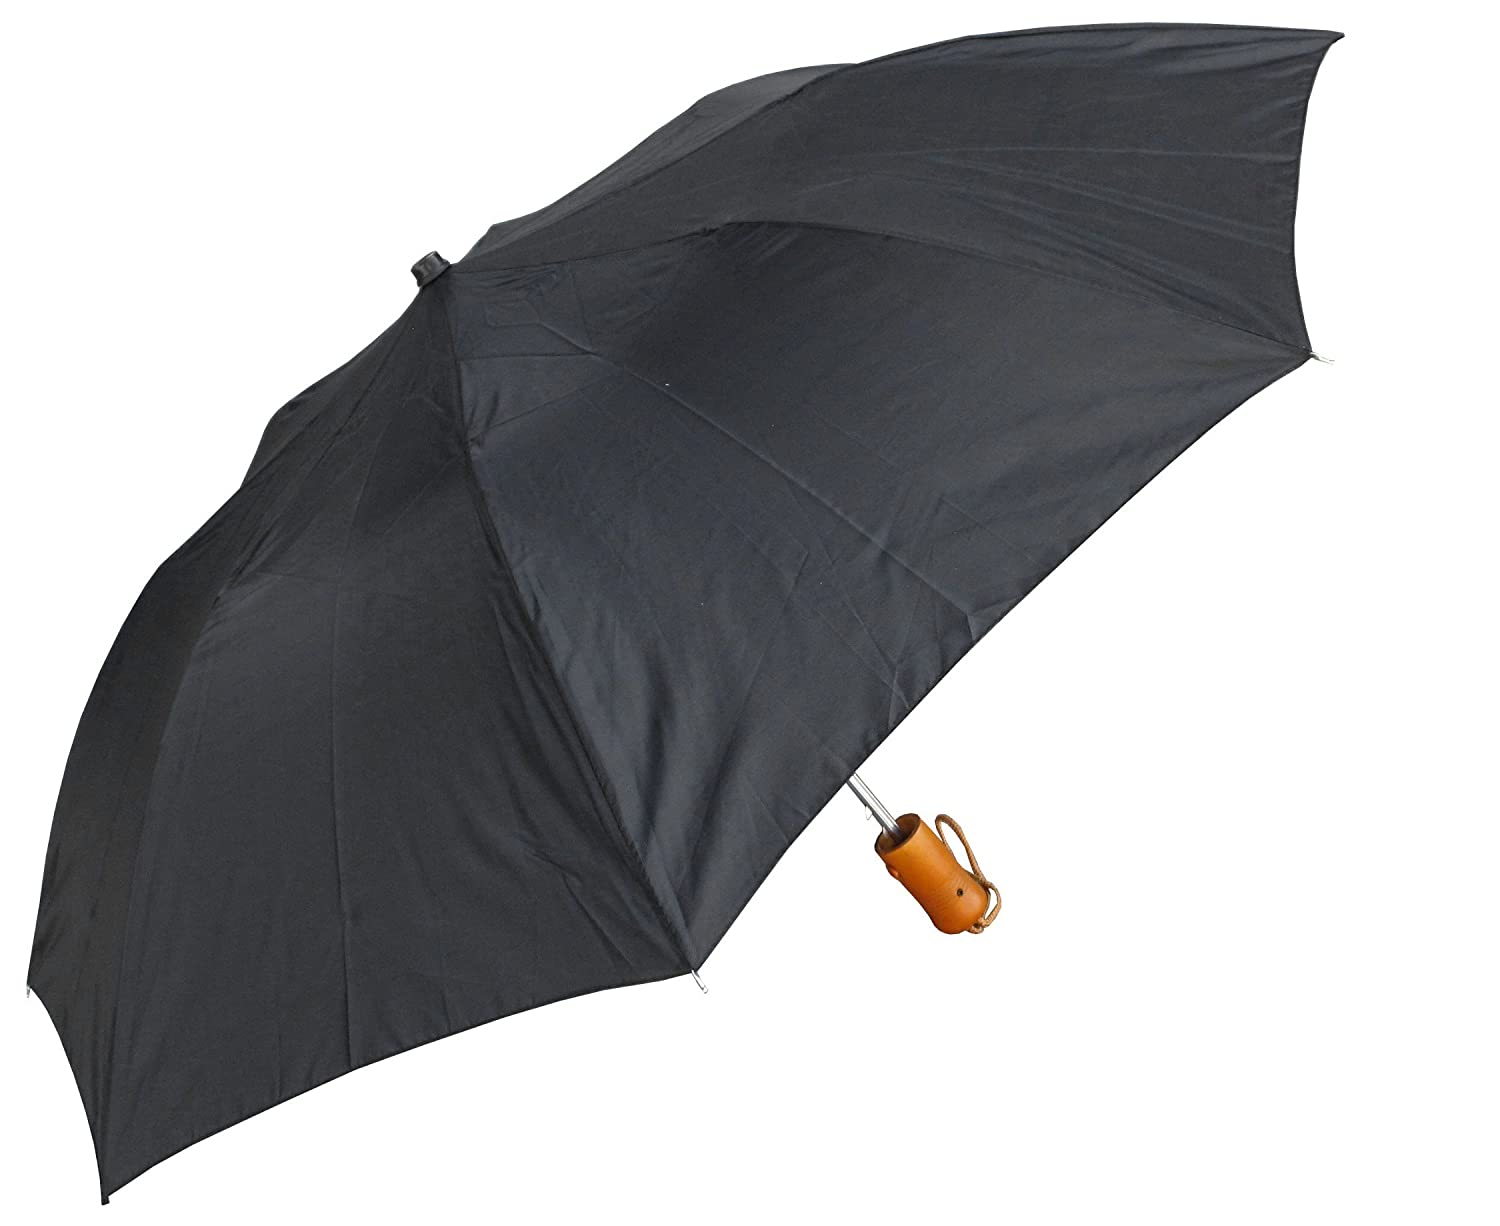 RainStoppers W003 Auto Open Collapsible Umbrella with Rubberized Plastic Handle, 42-Inch (Black) W001-w-black